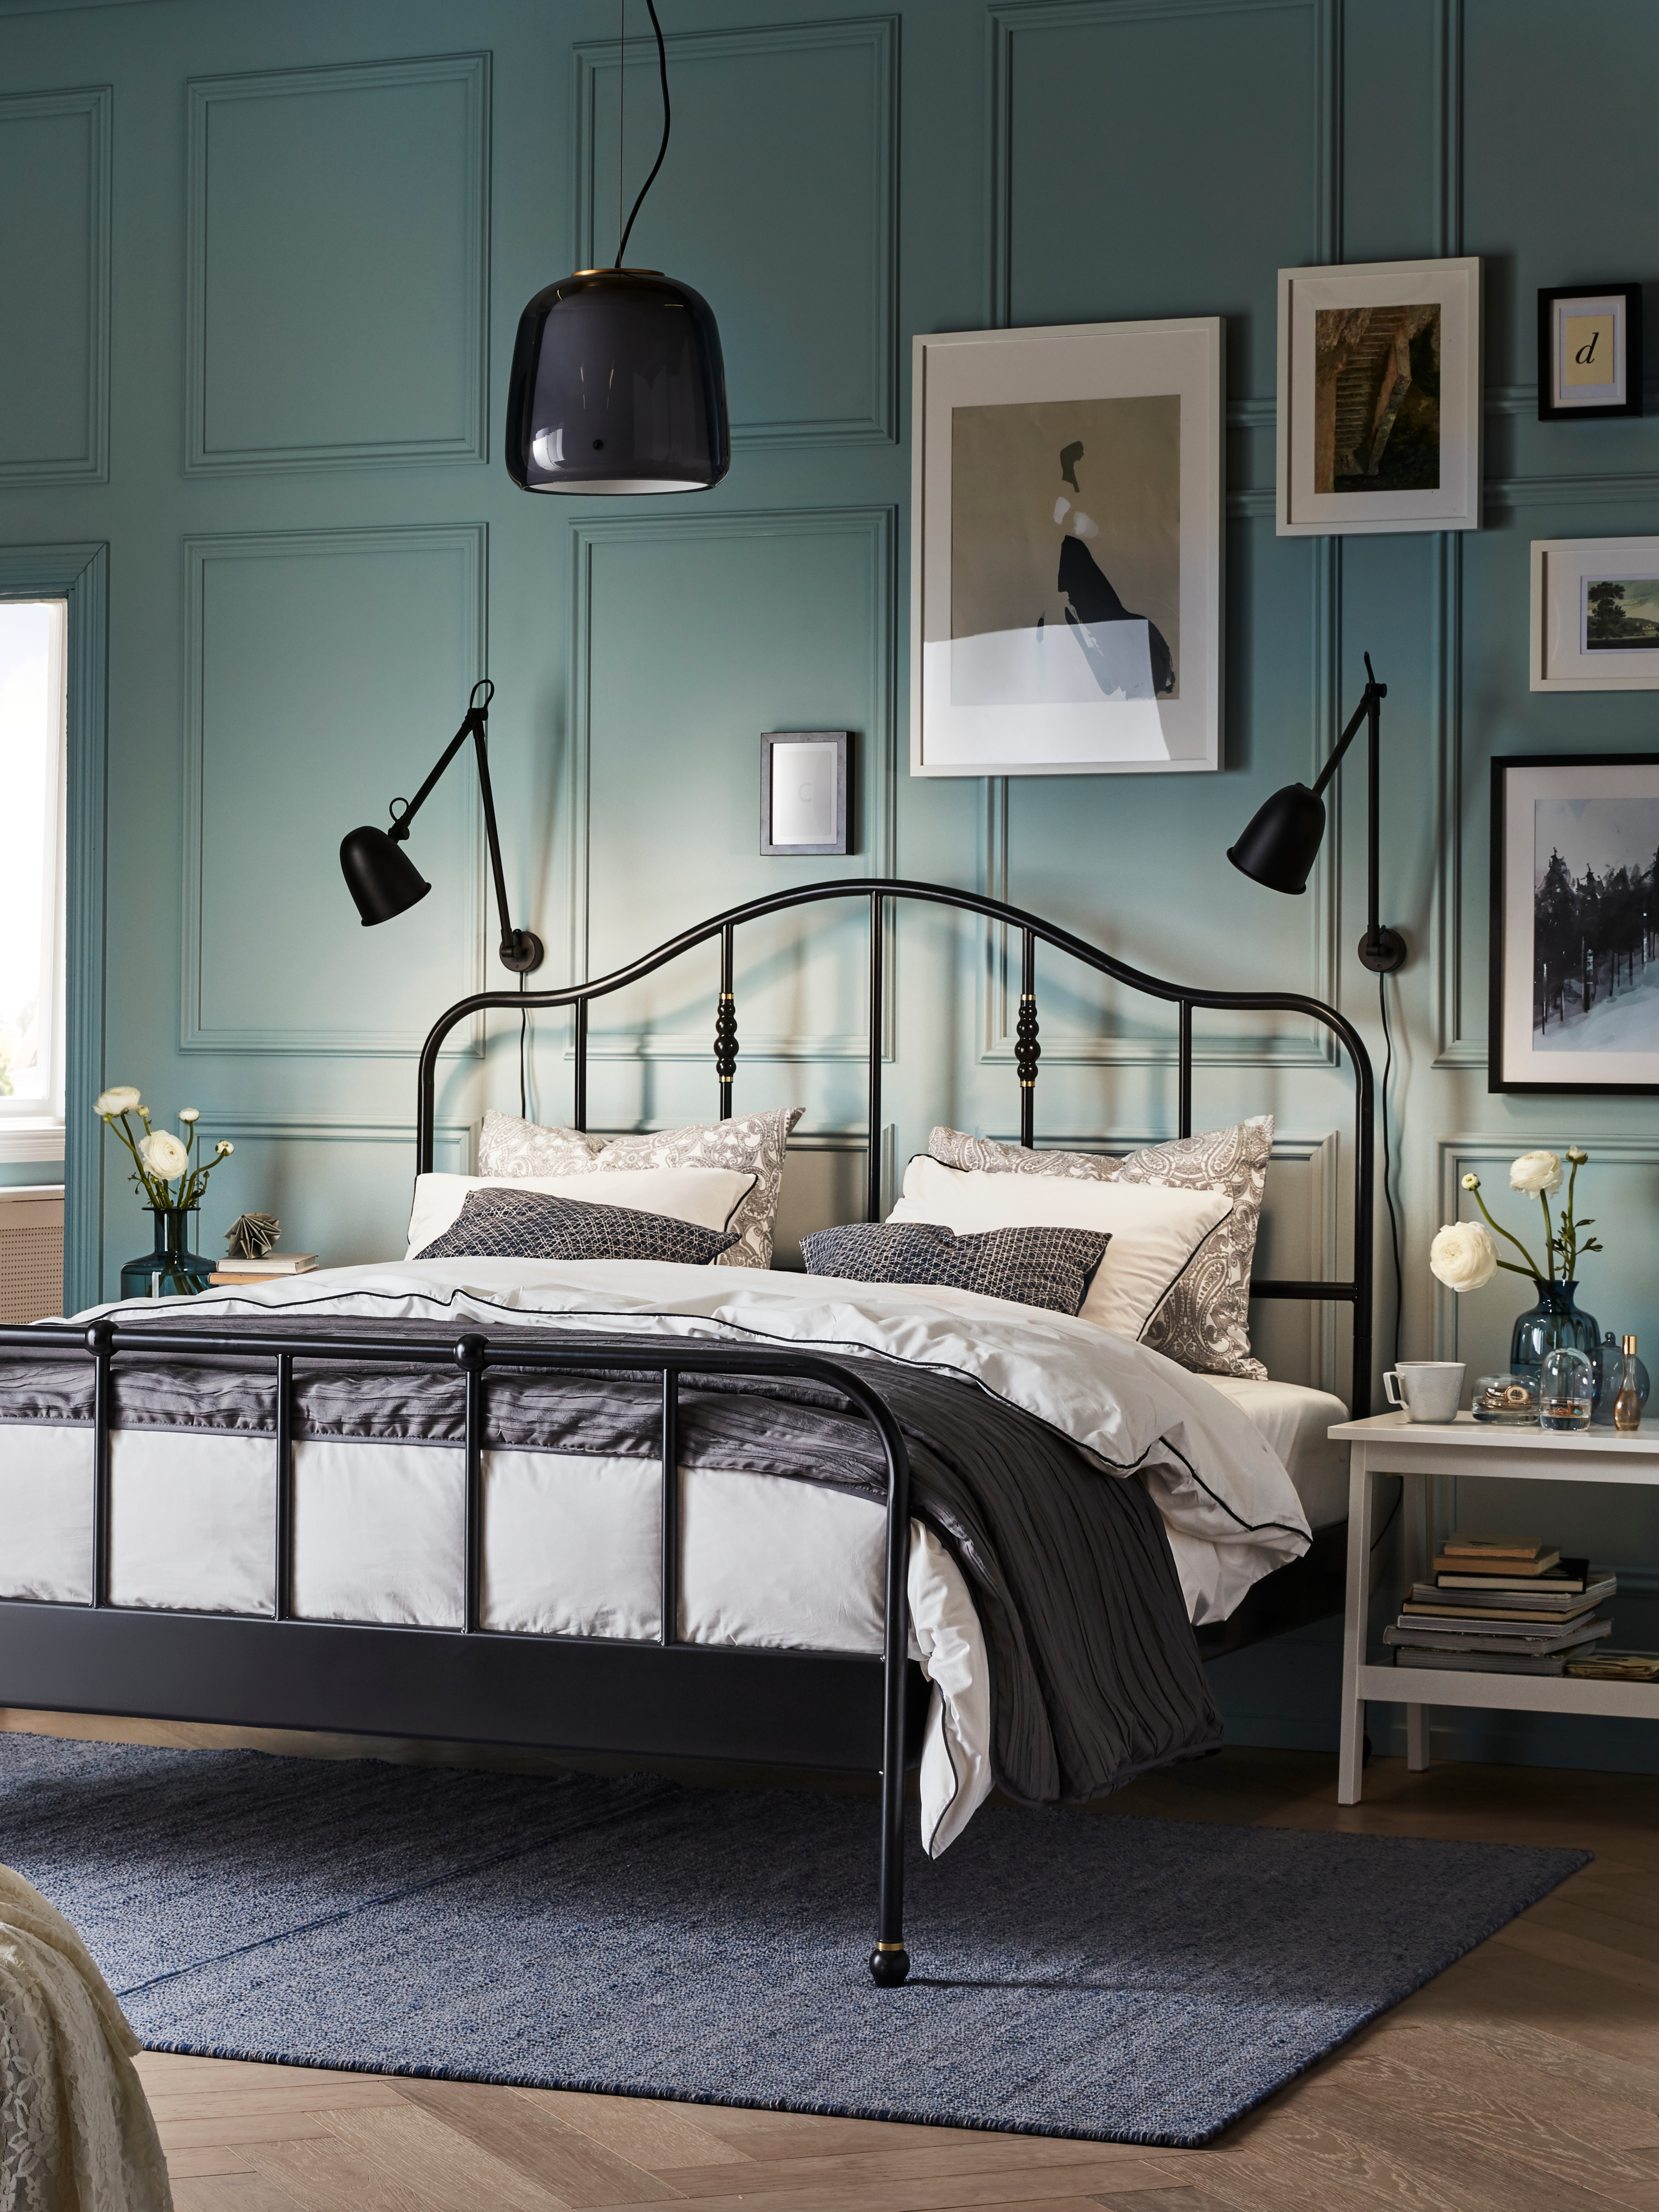 SAGSTUA black bed frame with grey bedspread under a grey glass and brass pendant lamp in a bedroom with a green wall.